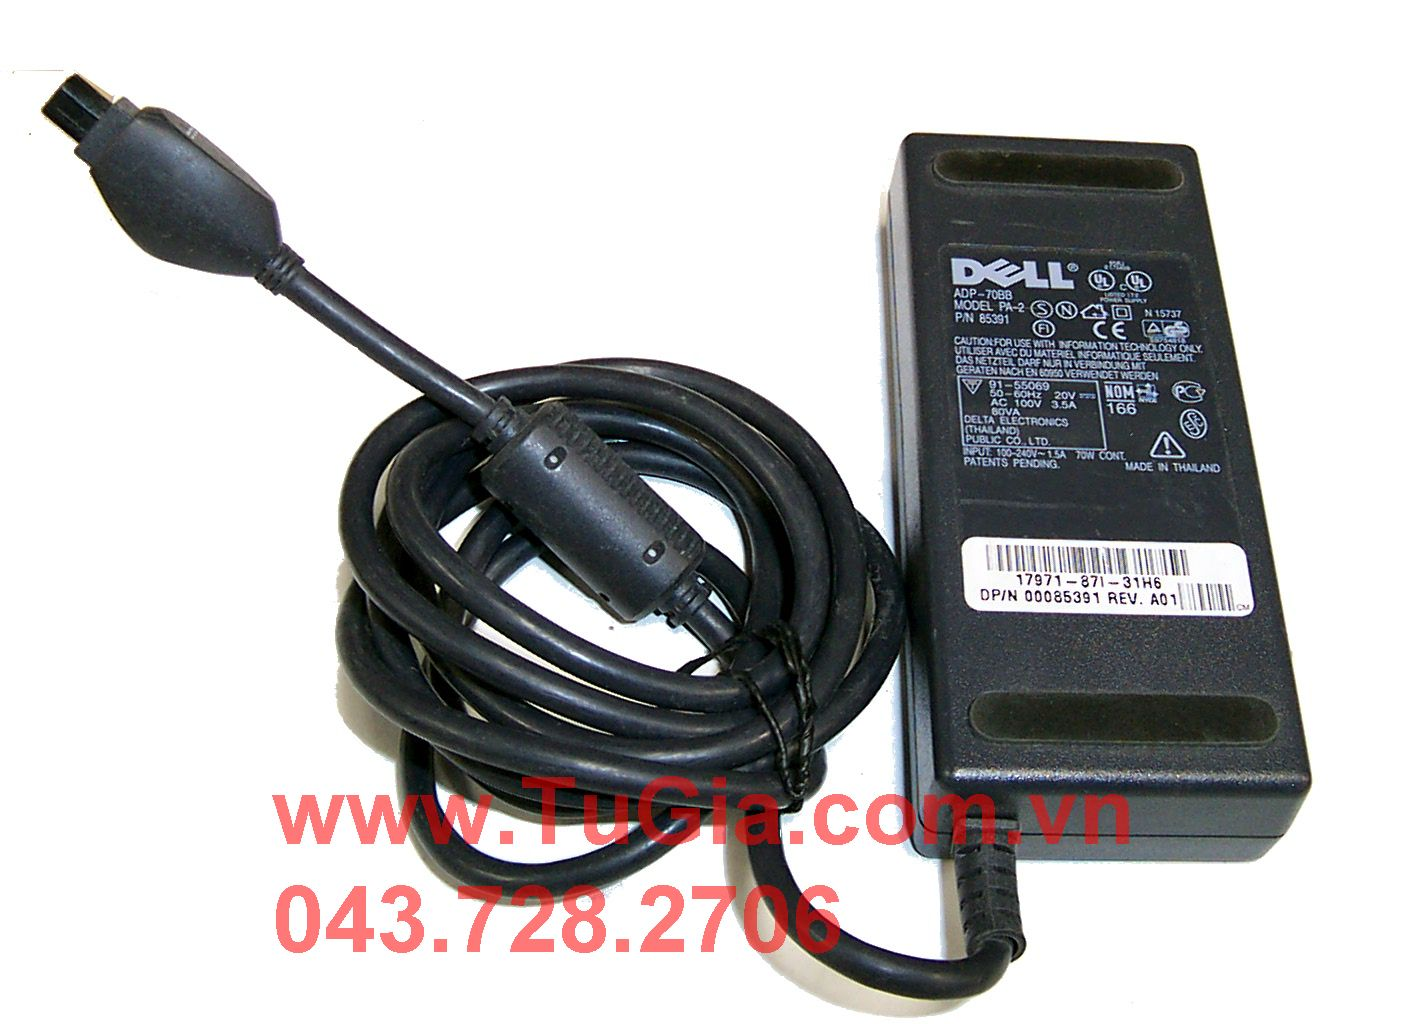 ADAPTER DELL 20V - 3.5A